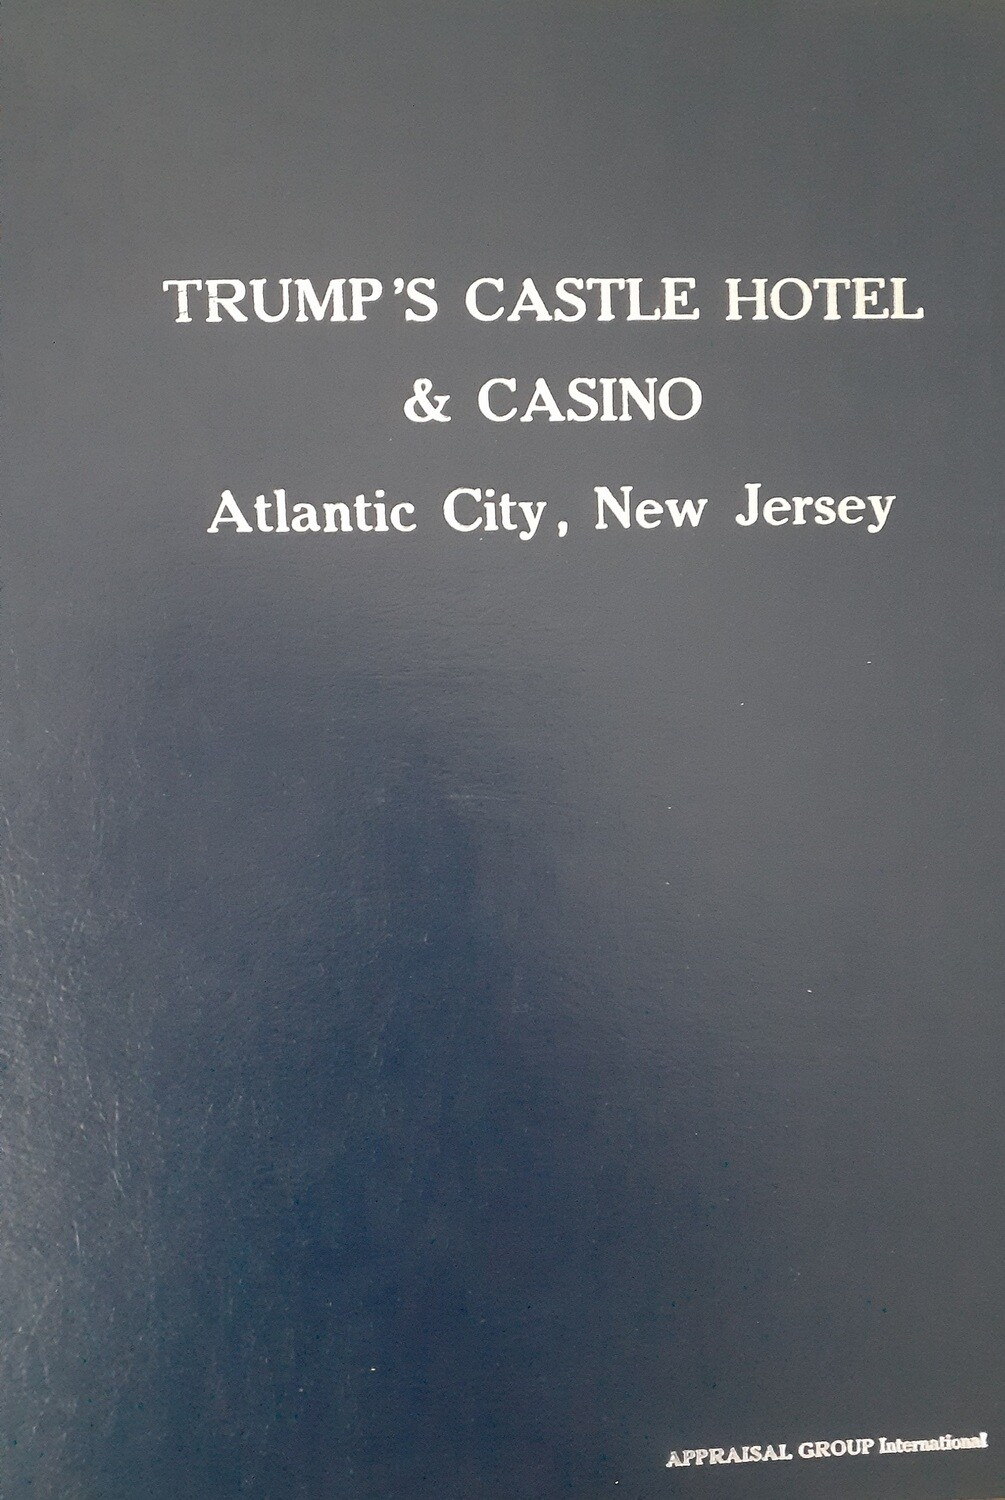 """TAP IMAGE TO READ MORE. THEN SCROLL. ORIGINAL TRUMP CASTLE CASINO APPRAISAL, PREPARED AT THE DIRECTION OF """"THE TRUMP ORGANIZATION """" UTILIZING PROJECTIONS TO ENHANCE VALUE THAT JUST CAN'T BE ACHIEVED."""